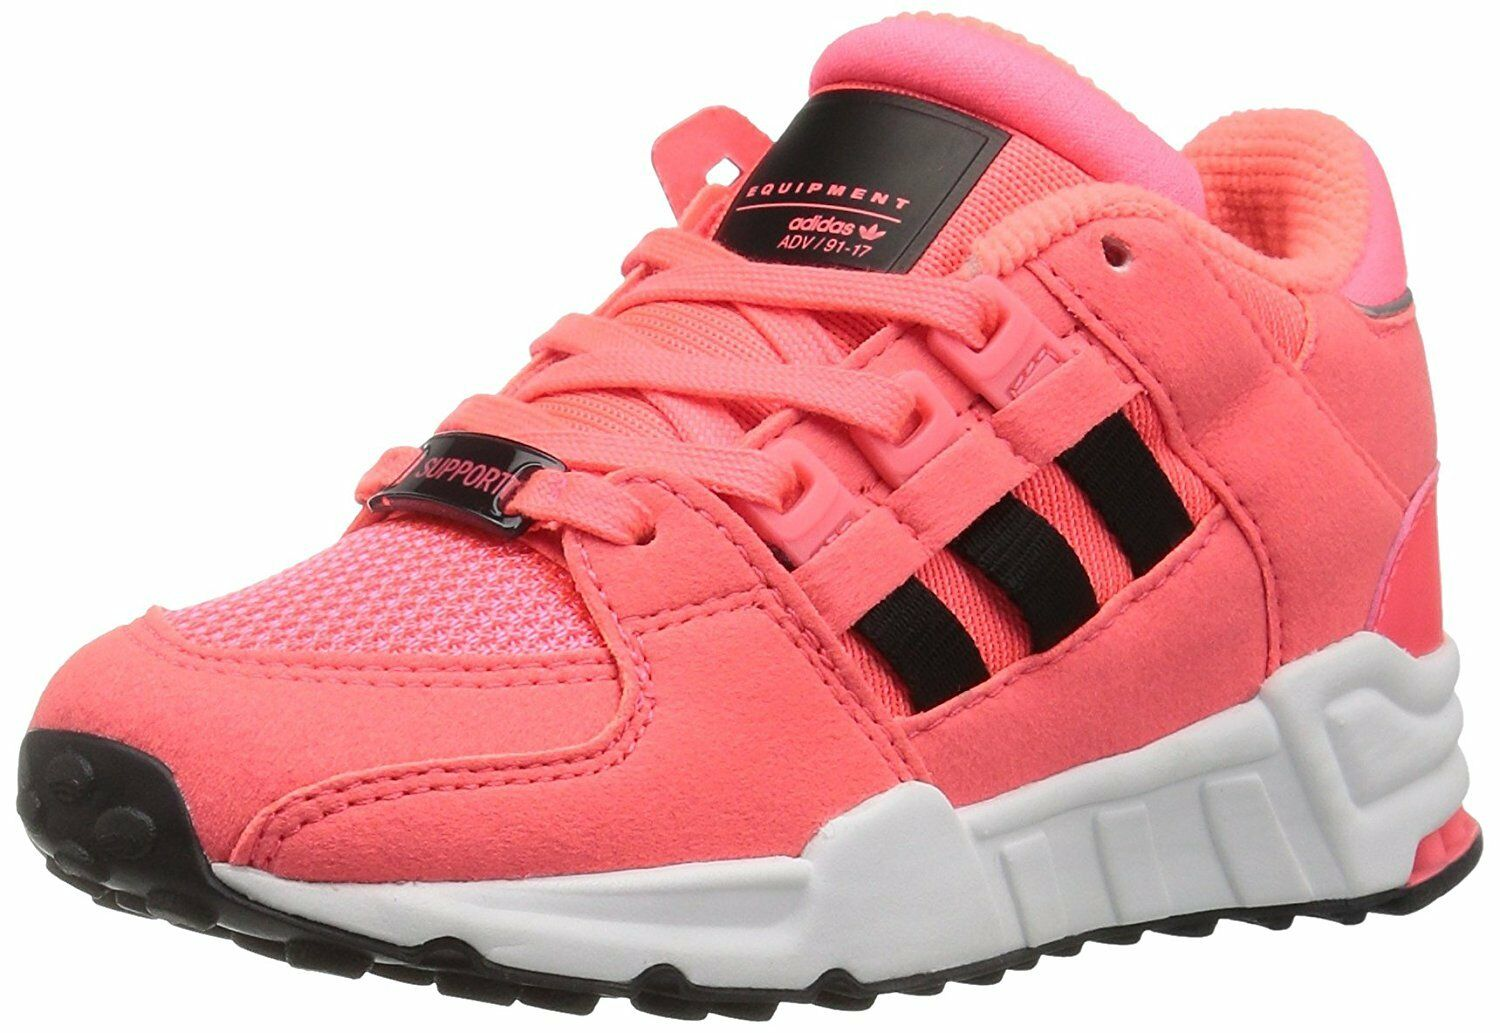 Adidas Originals poco Girls Eqt Zapatilla 1US poco Originals C Support elegir talla/color. d4efde